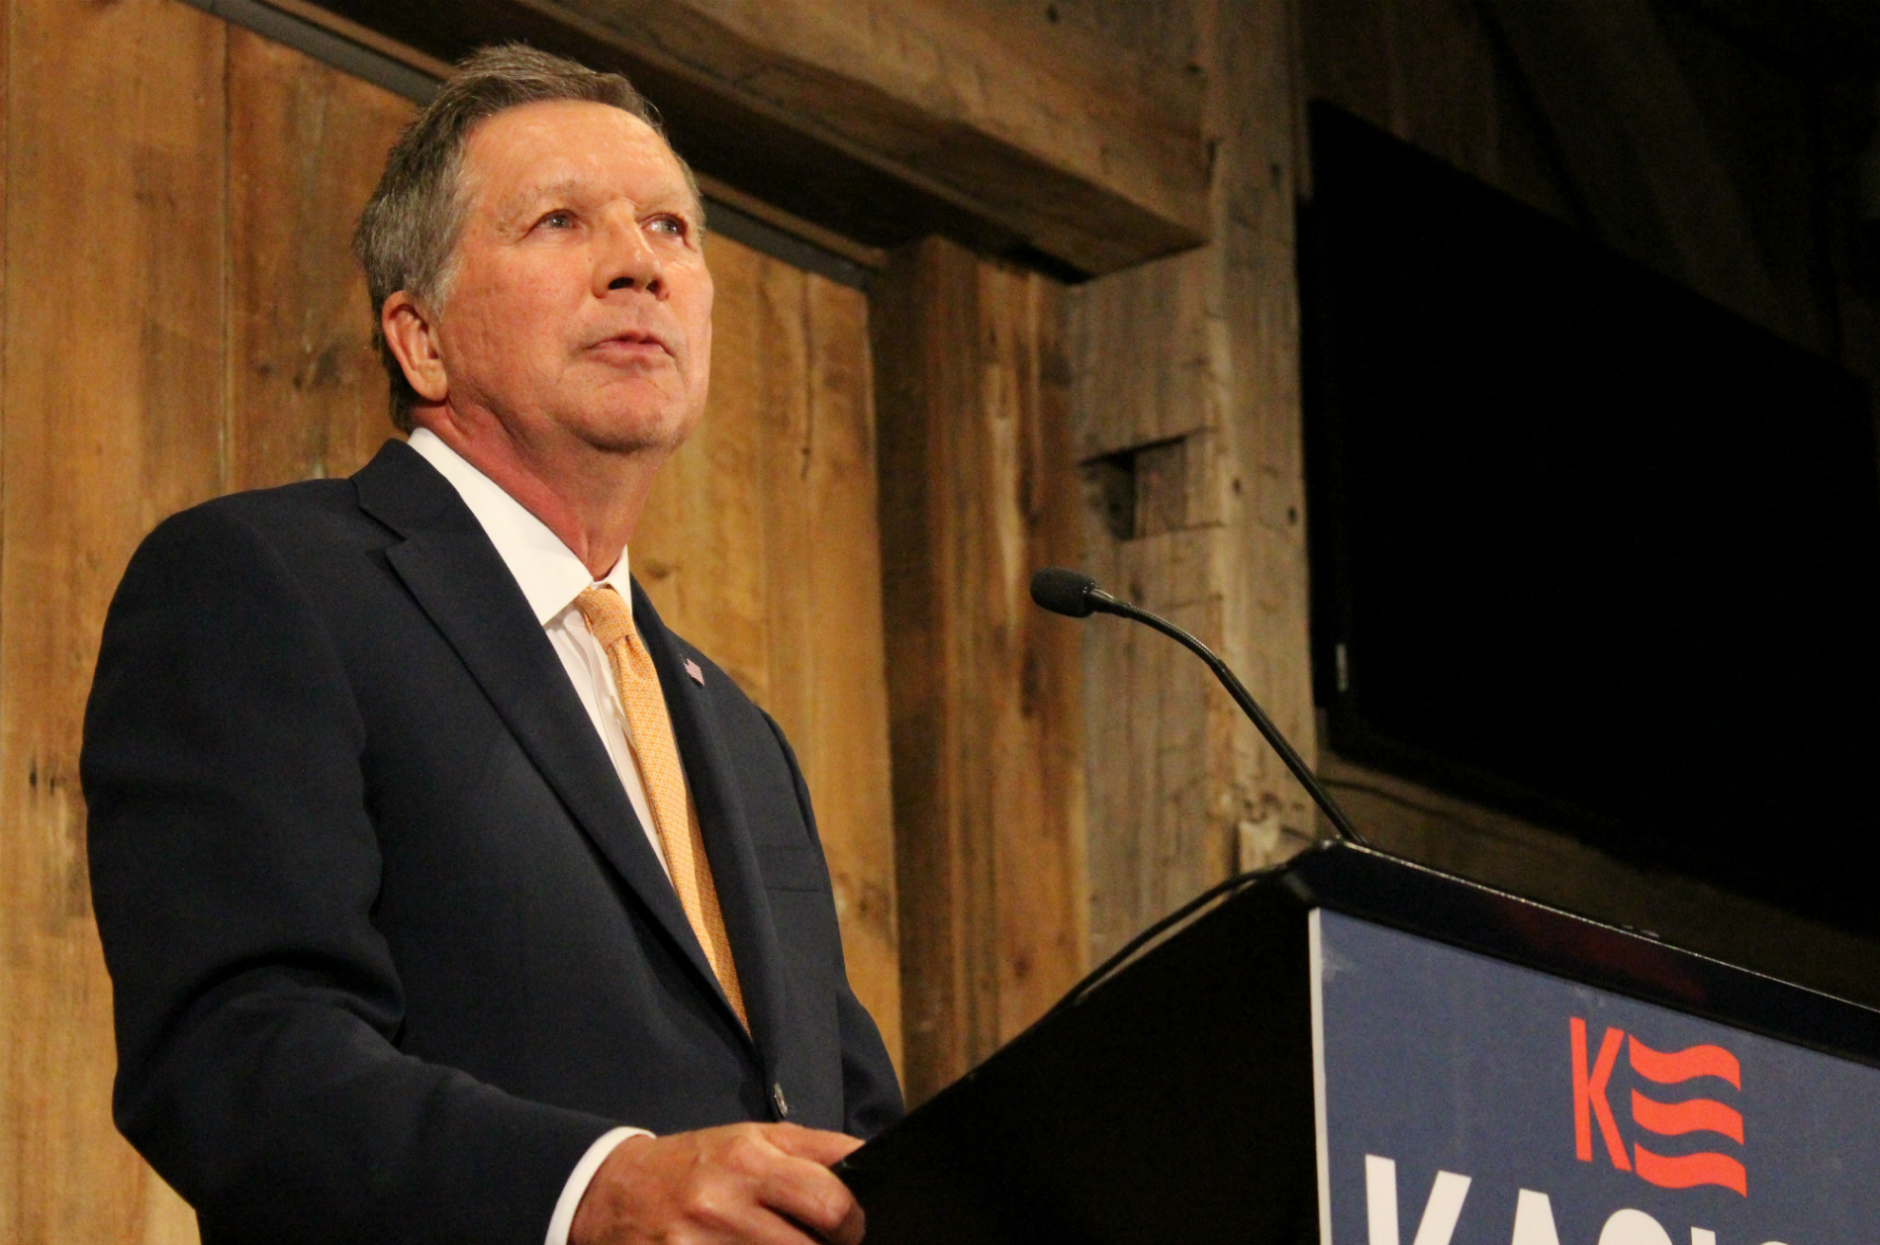 Kasich fills open Board of Trustees position with campaign donor